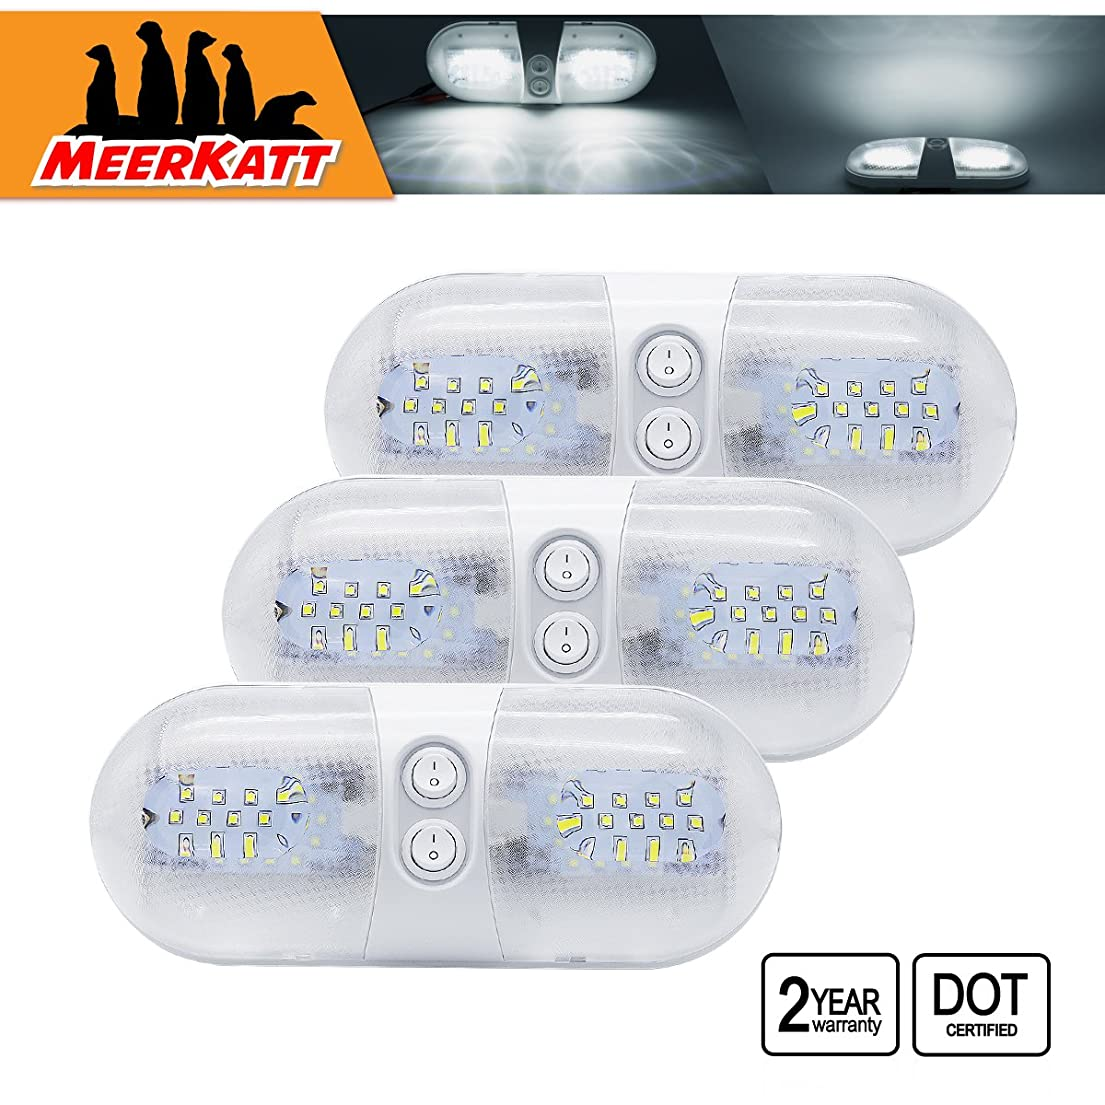 Meerkatt Oval 11 Inch Ceiling Double Dome 420LM Universal Fixture Bulb Interior Lights 48 LED 2835 SMD Van Caravan RV SUV Camper Boat Bus with Switch 12-18v DC Natural White 4000-4500k (Pack of 3) TR hrizj4210898582